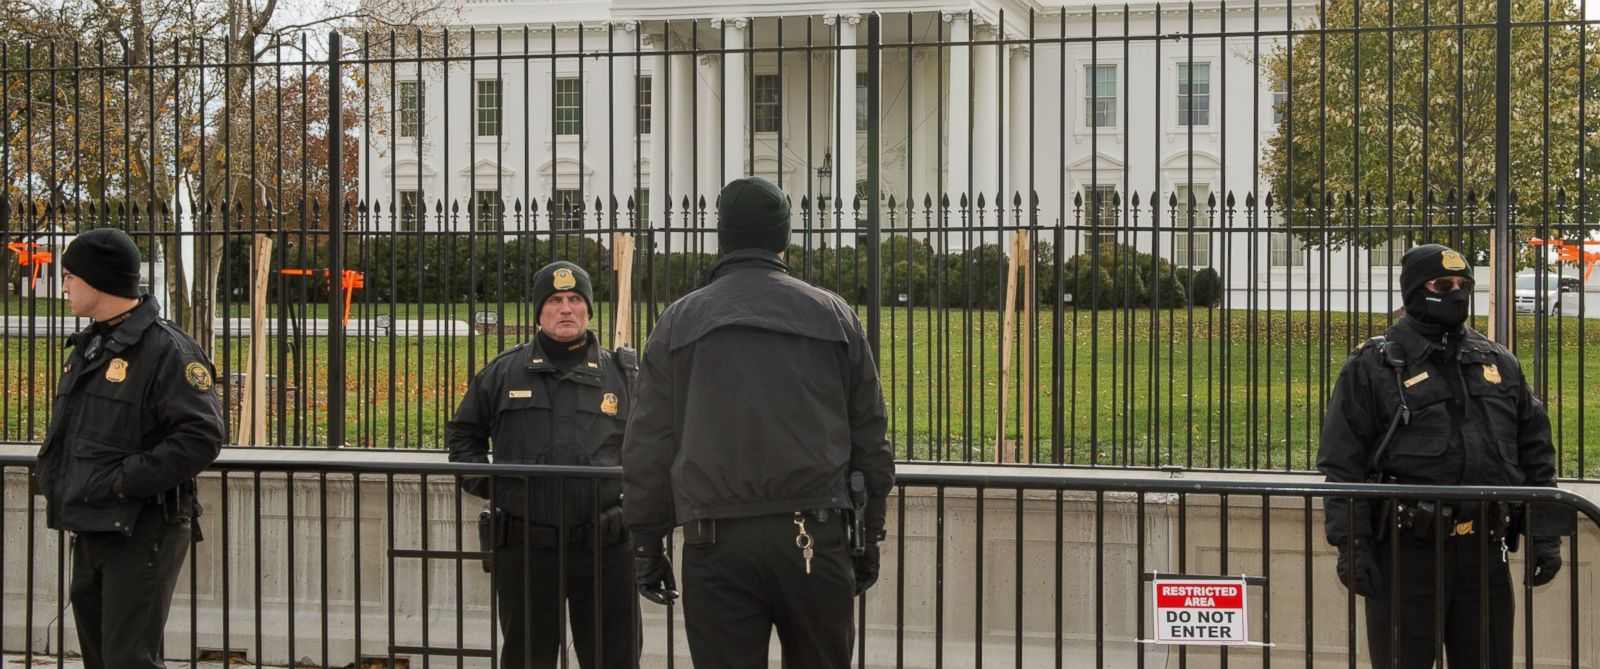 PHOTO: Members of the Uniformed Division of the US Secret Service stand on duty in front White House, Nov. 19, 2014.